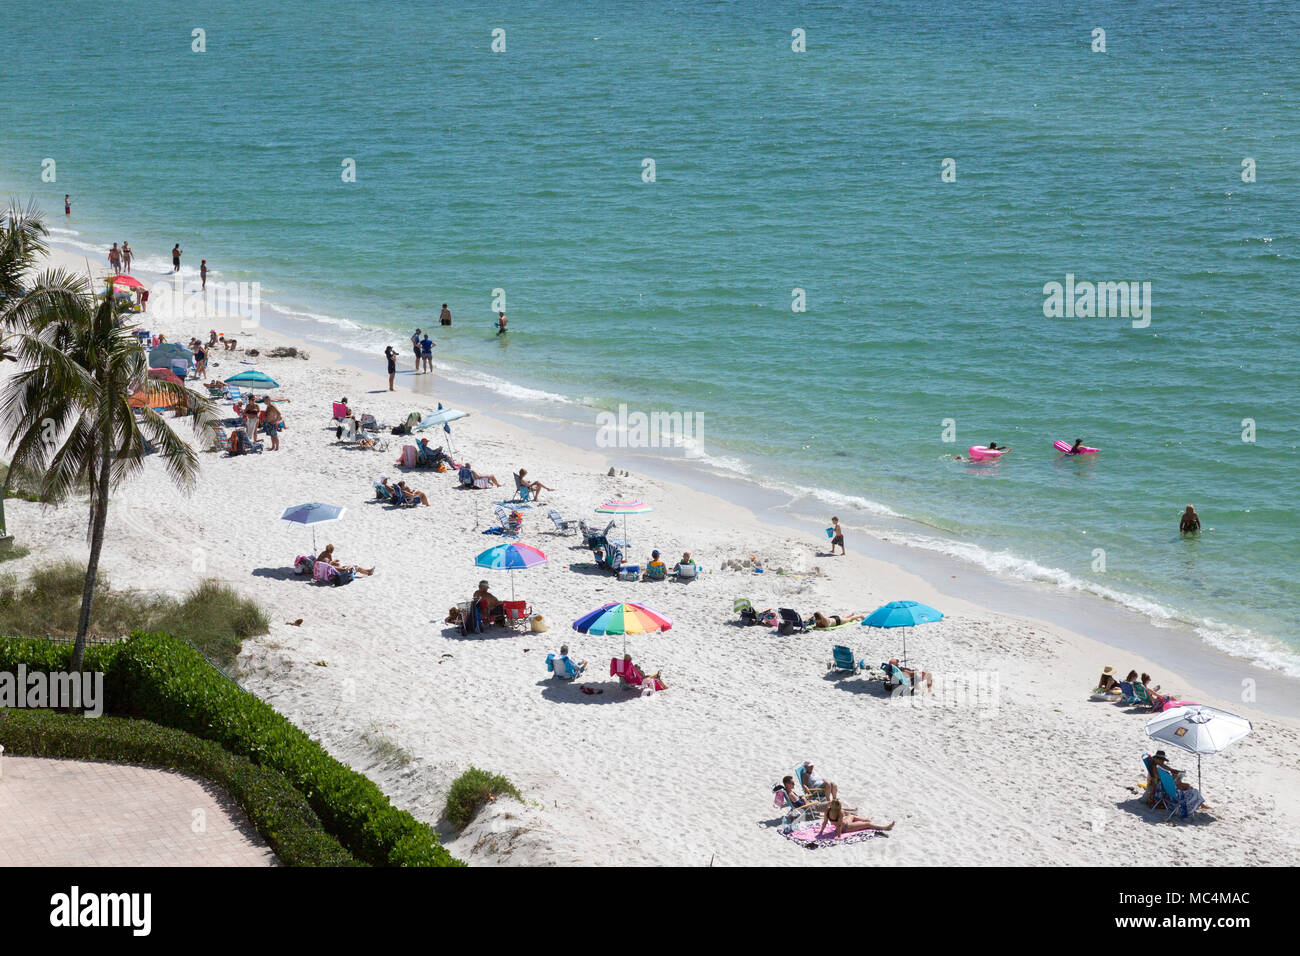 View from above of beach scene along the coast of Florida in Naples. Families vacationing over spring break. Colorful beach umbrellas. - Stock Image